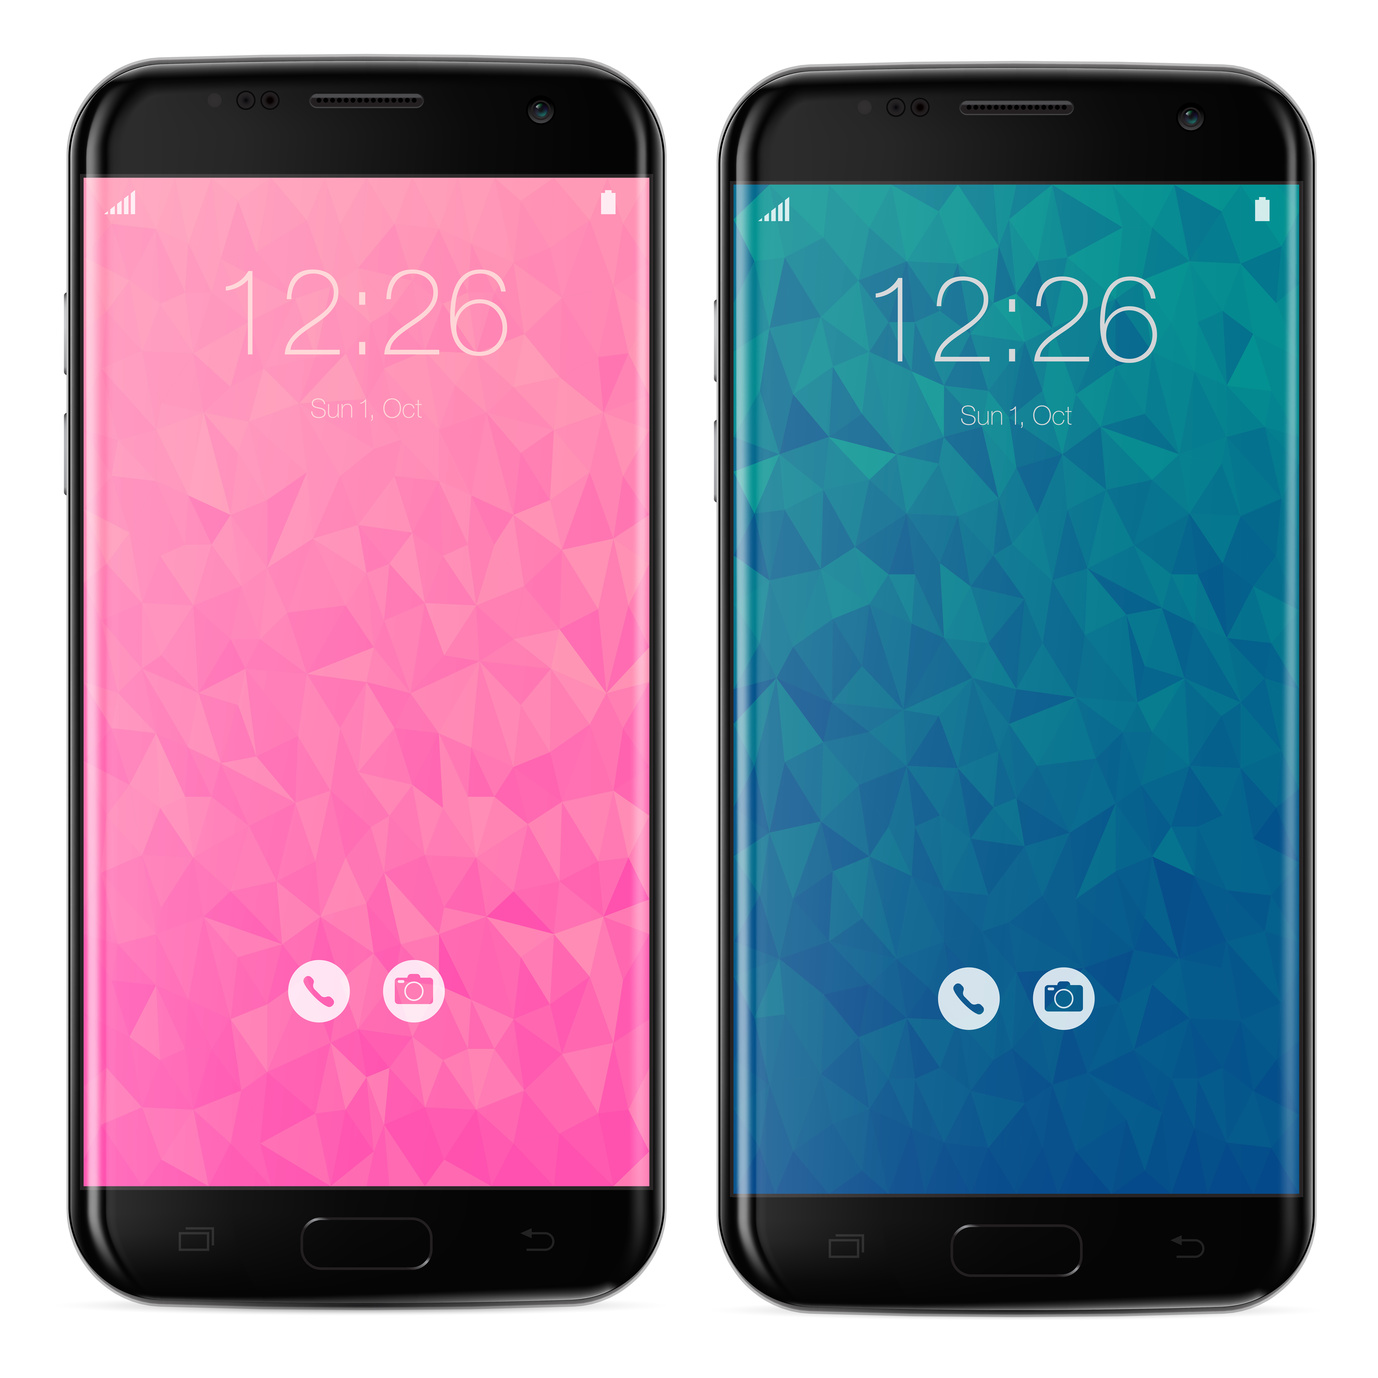 Smartphone black with polygonal pink and blue locked home screen